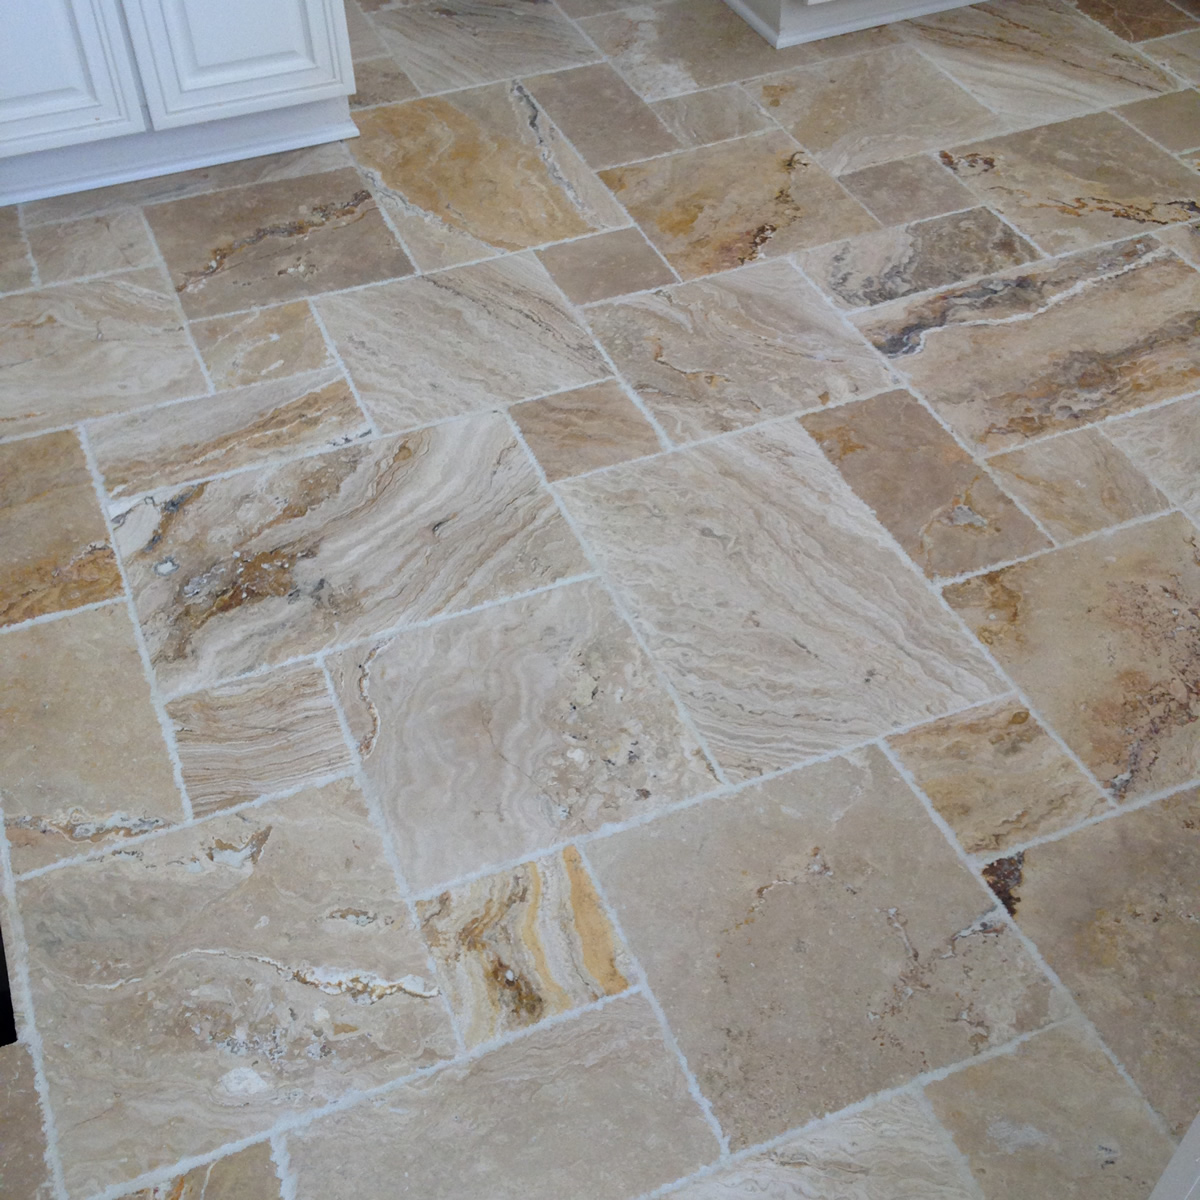 Tile style suwanee ga bathroom remodeling company and tile french pattern custom floor tile installation custom travertine floor dailygadgetfo Choice Image